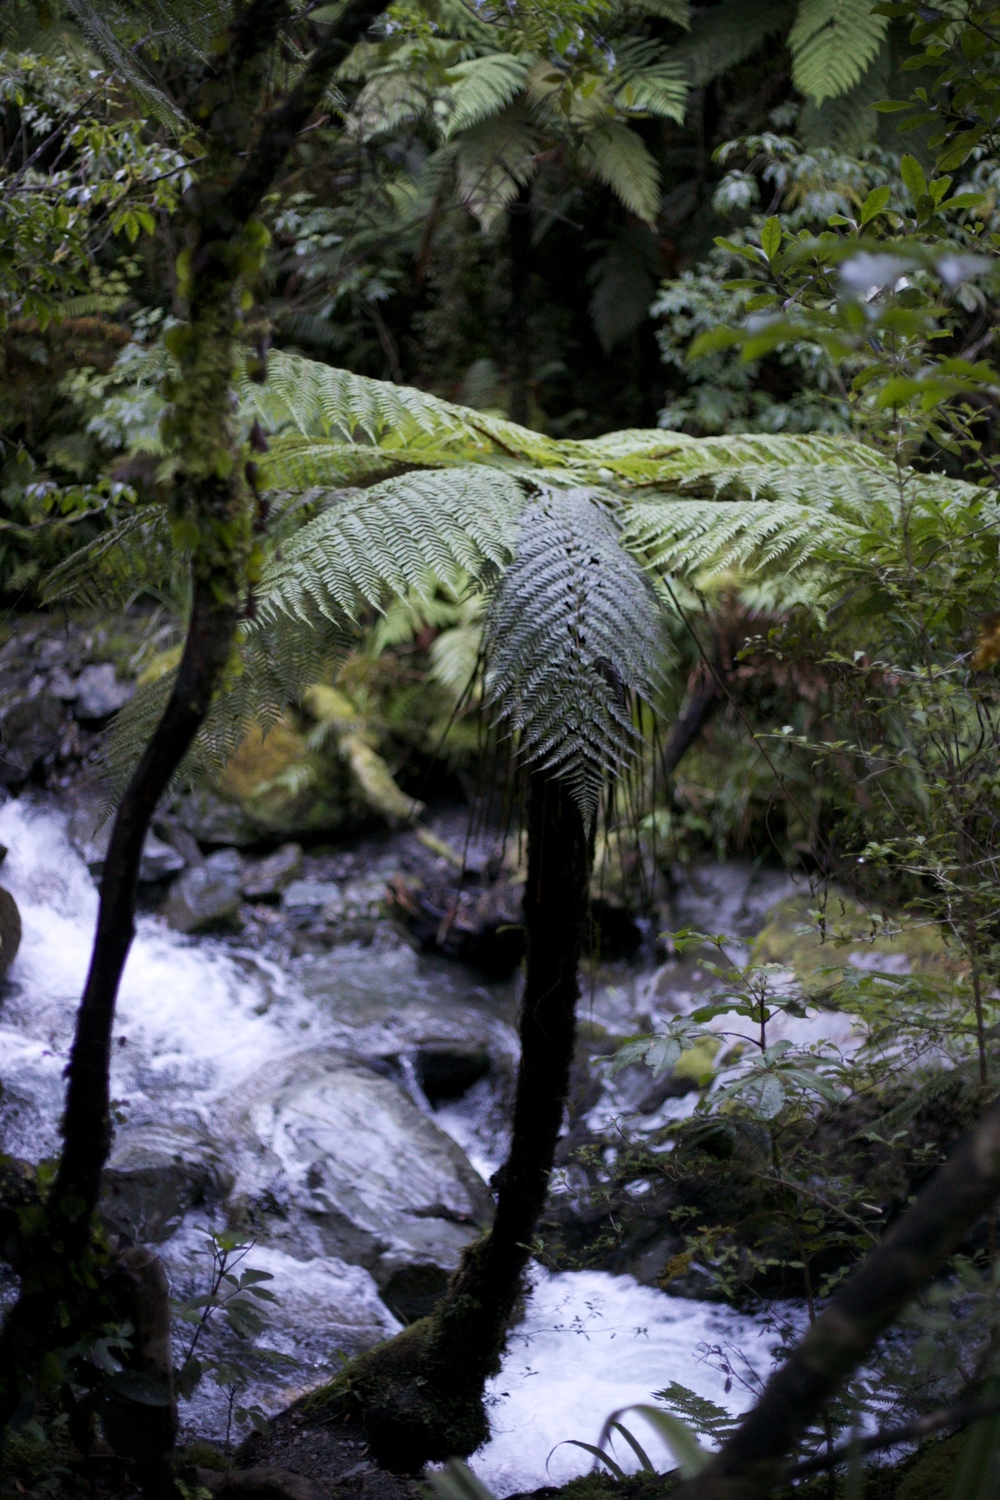 A small ponga tree by a river in the New Zealand native bush.